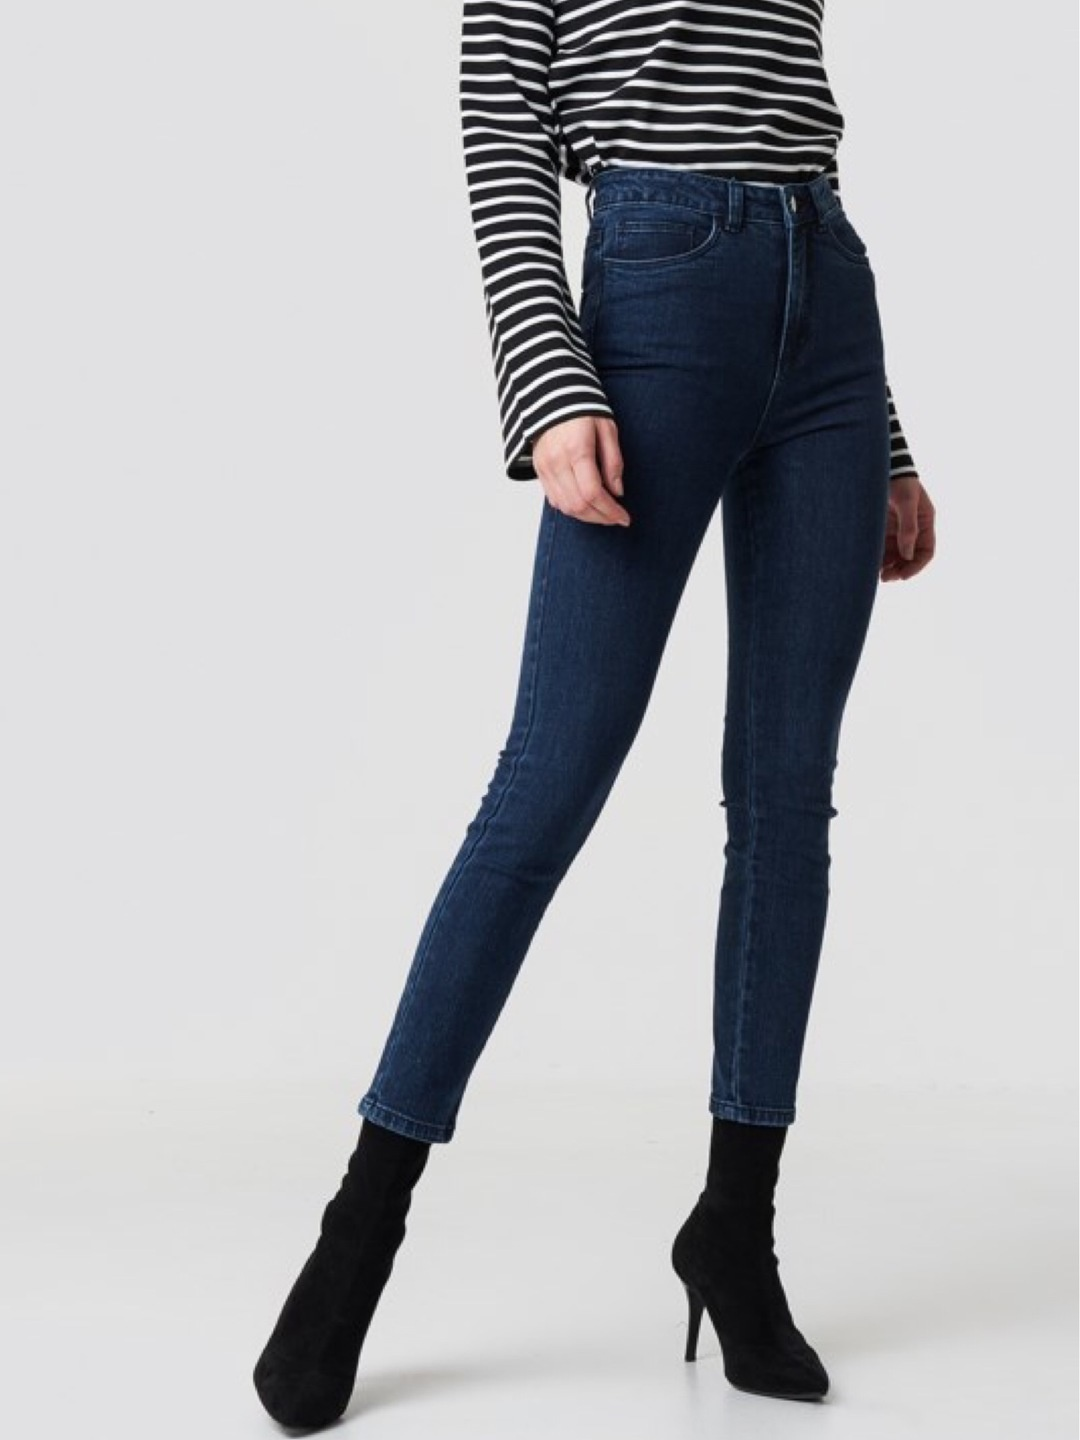 Women's trousers & jeans - NA-KD photo 4